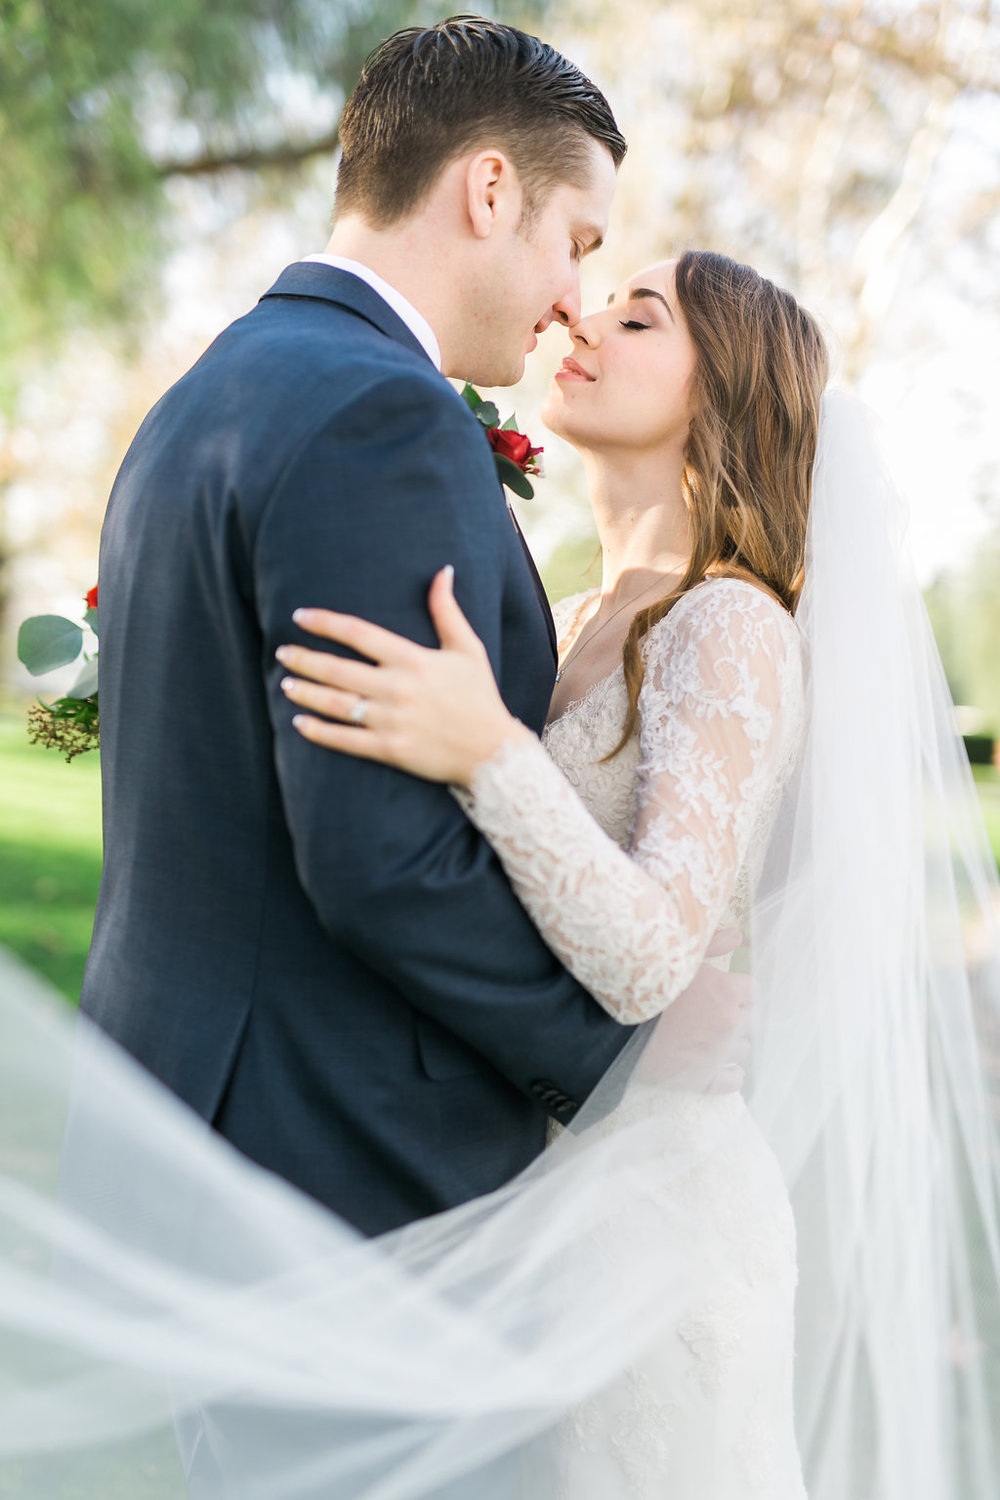 Fullerton Wedding Venue - Summit House Wedding — The Overwhelmed Bride Wedding Blog